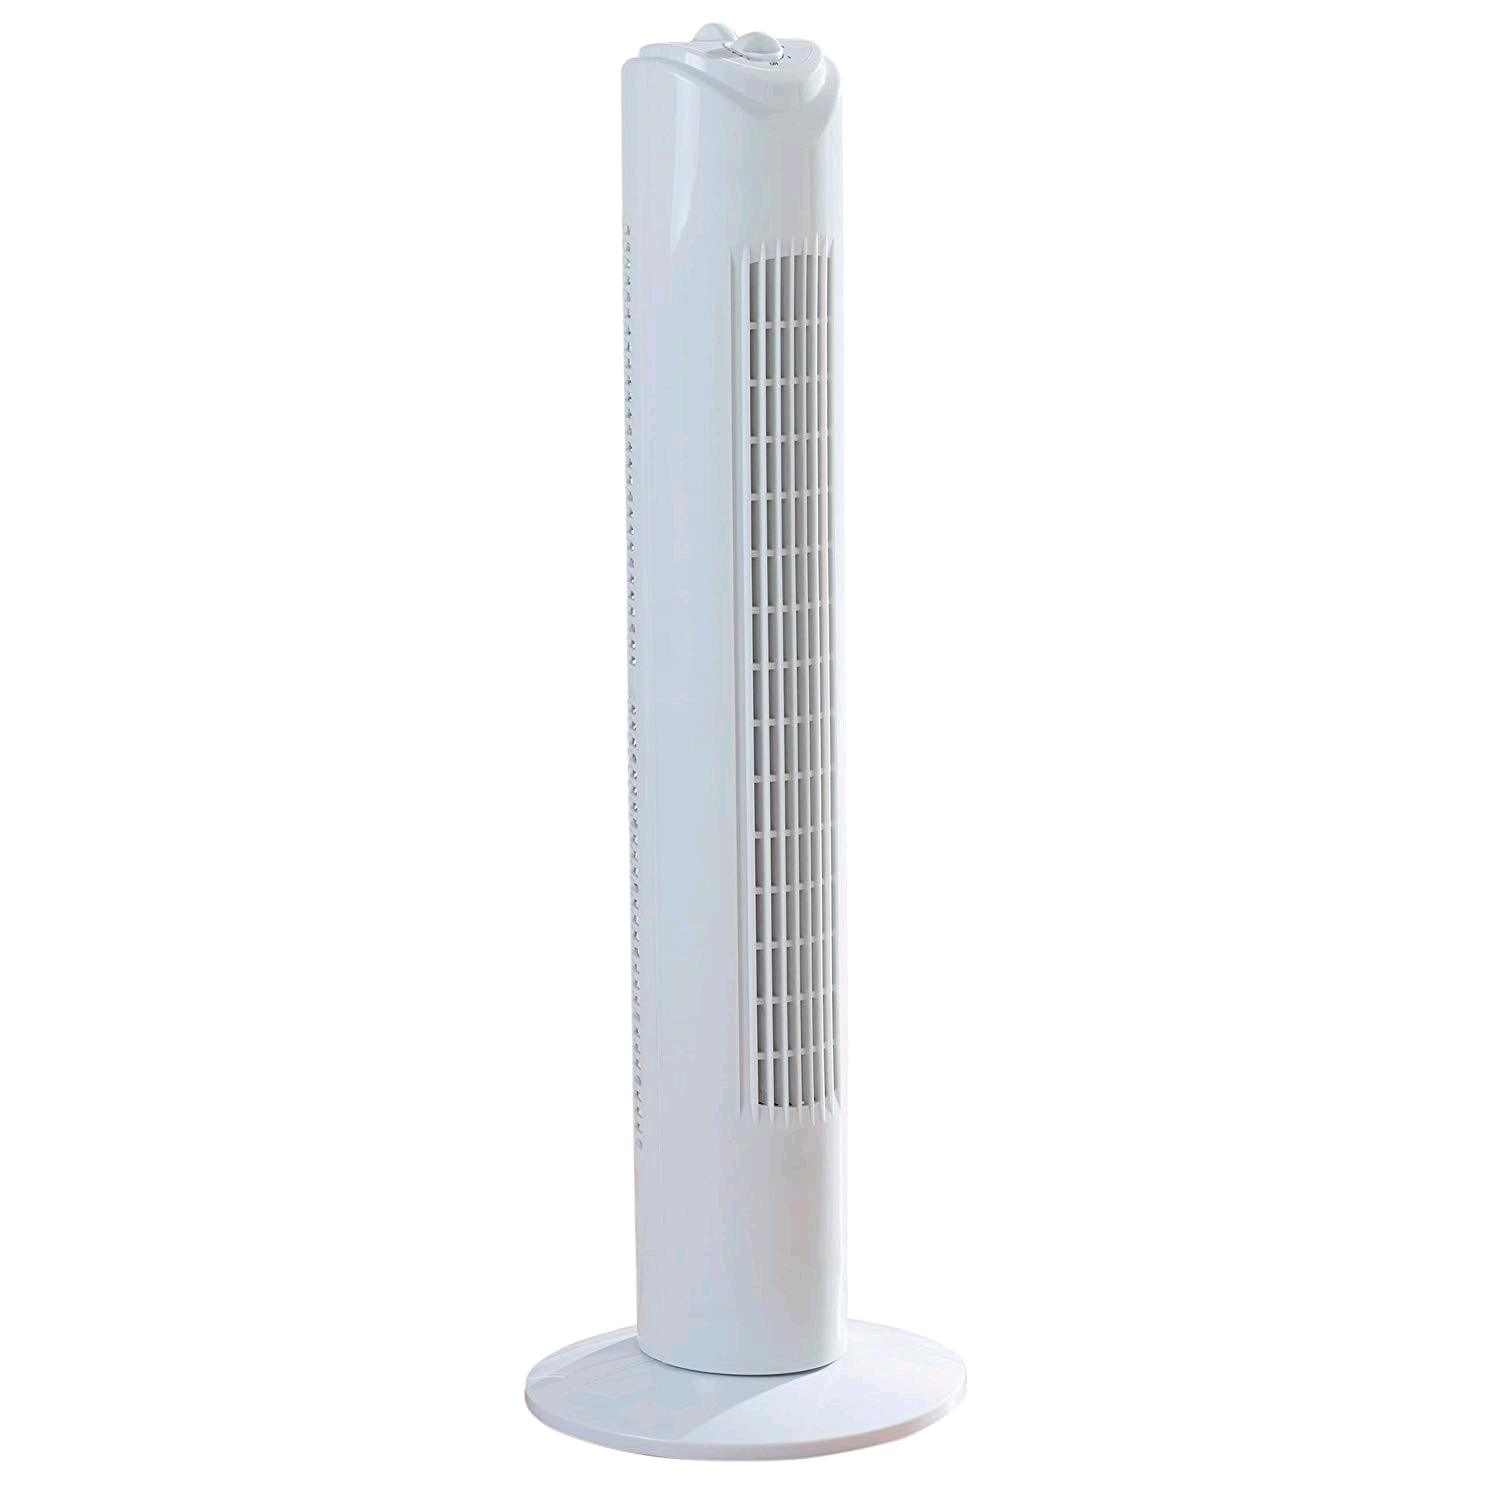 "Fine Elements 32"" Tower Fan White 3 Settings"